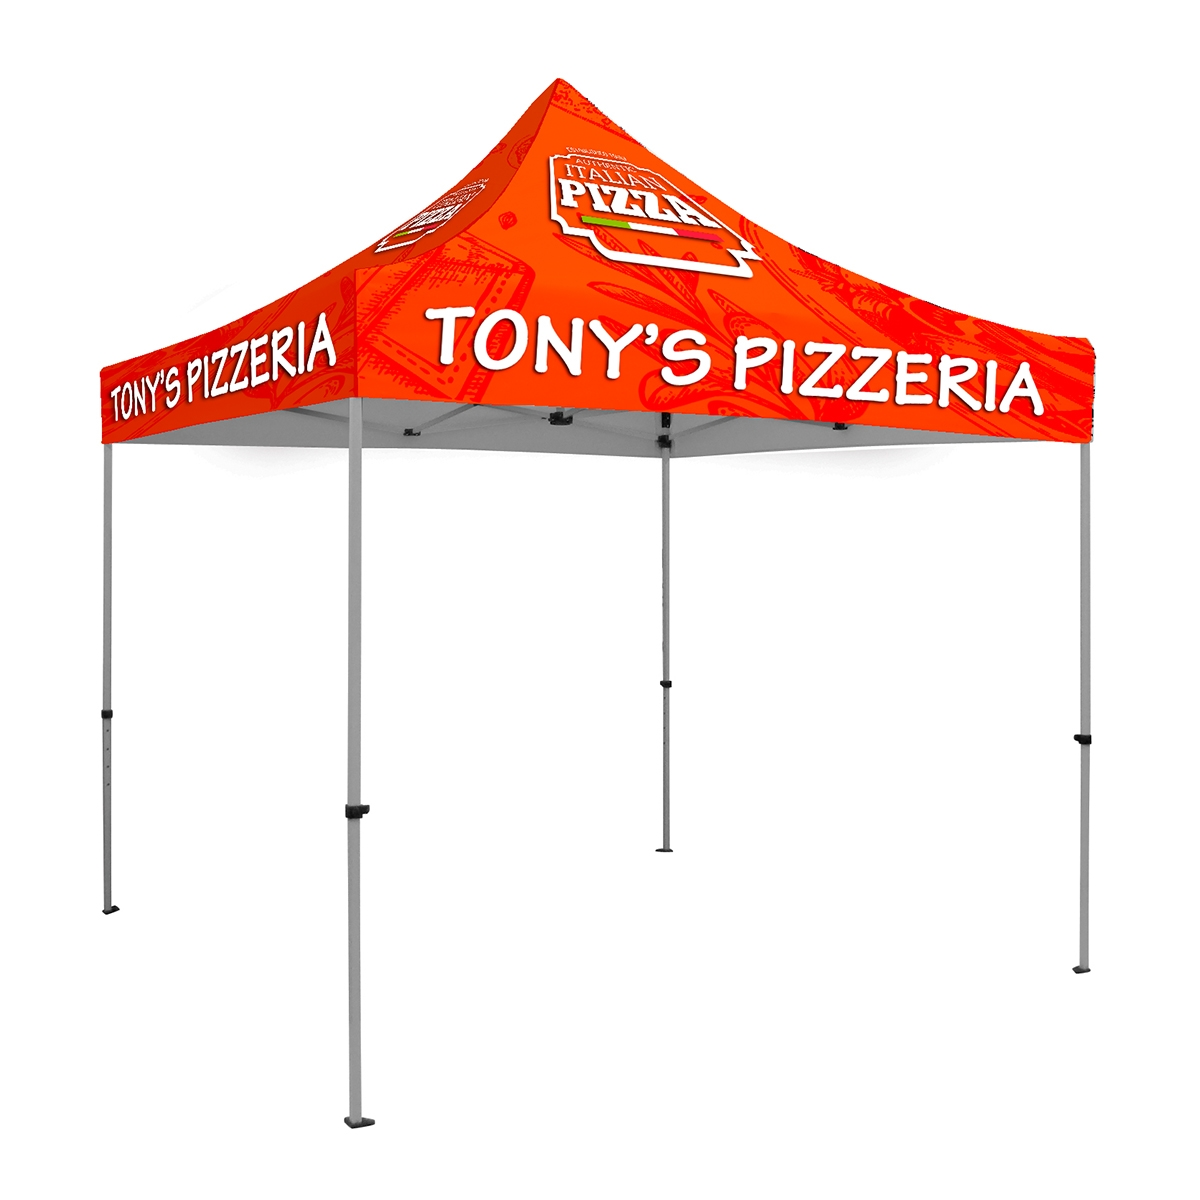 10 x 10 ft. Tent Full-Color Canopy with 40mm Steel Frame